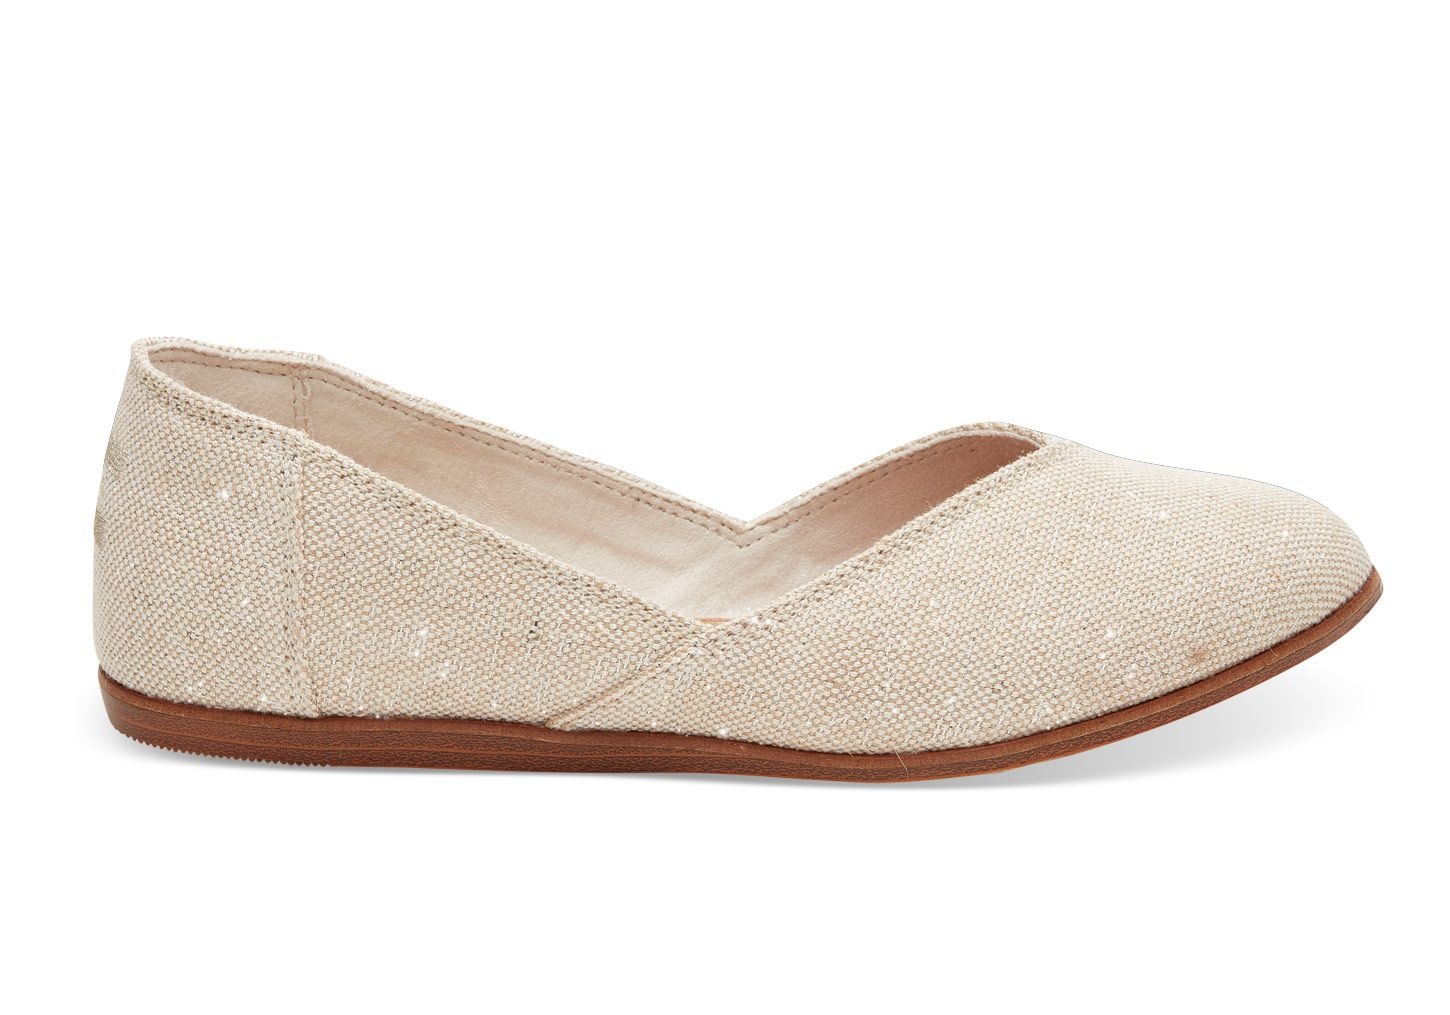 Toms Natural Metallic Burlap Women S Jutti Flats